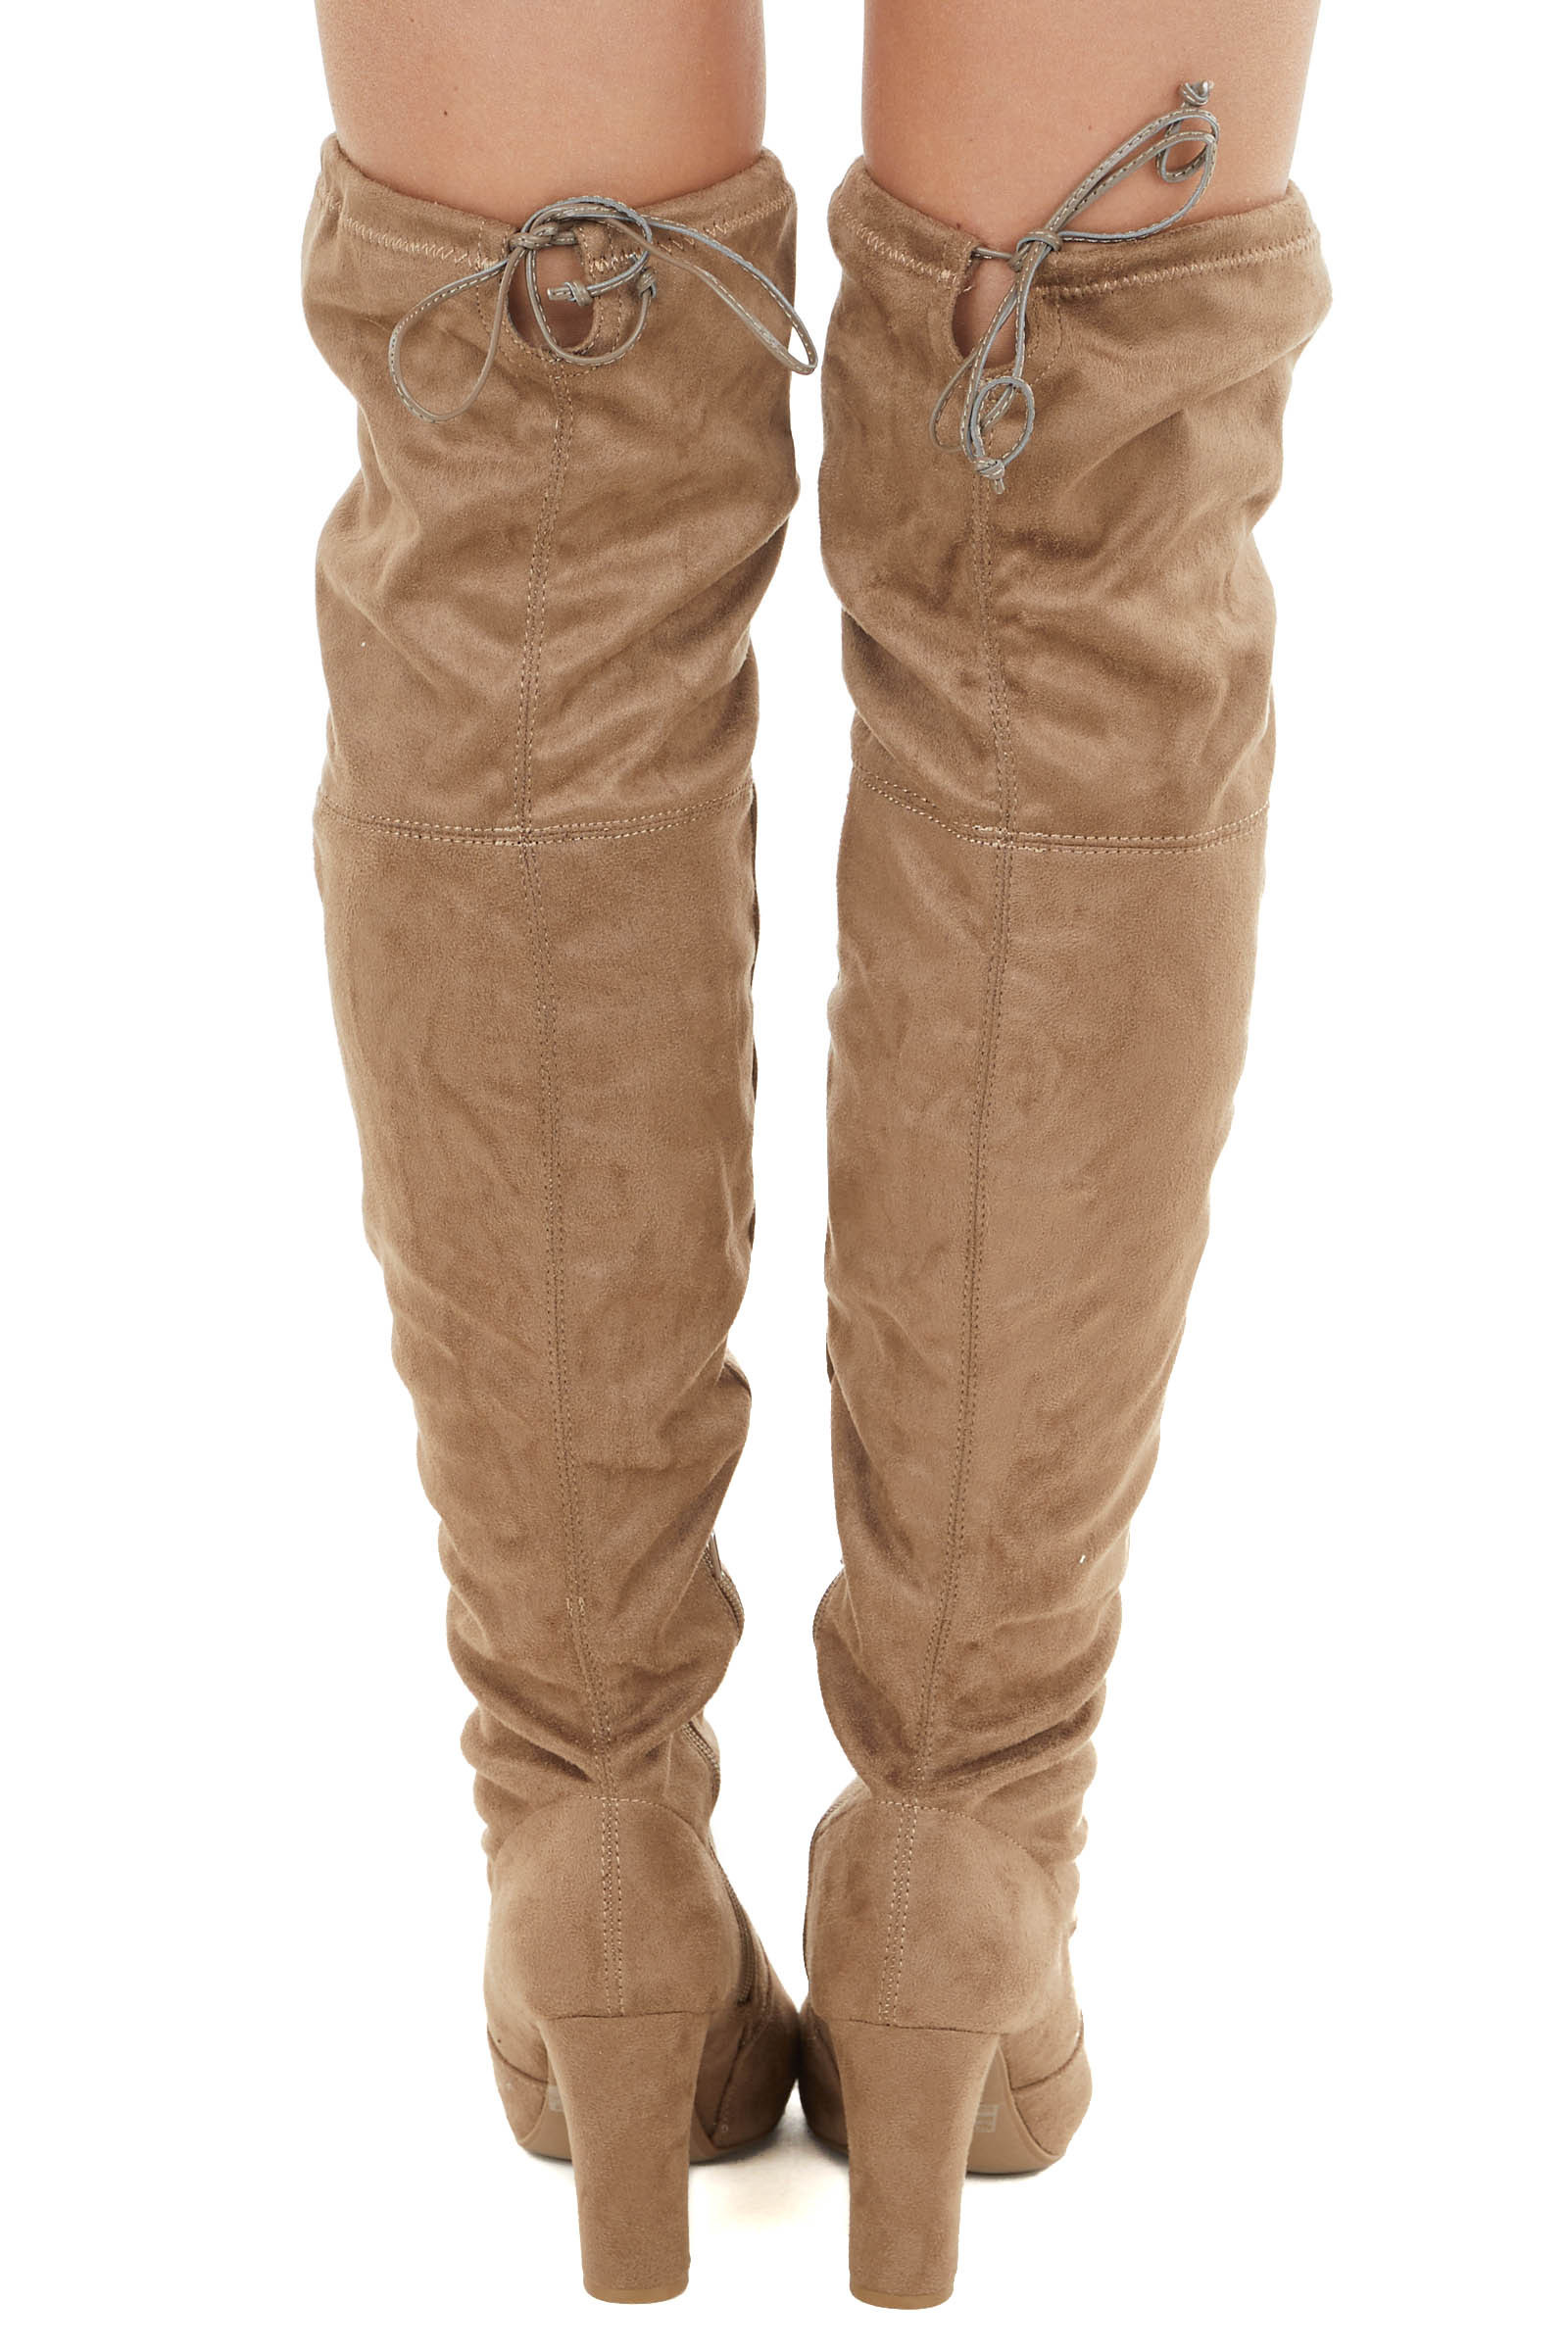 Taupe Faux Suede Above the Knee High Heel Boots with Tie